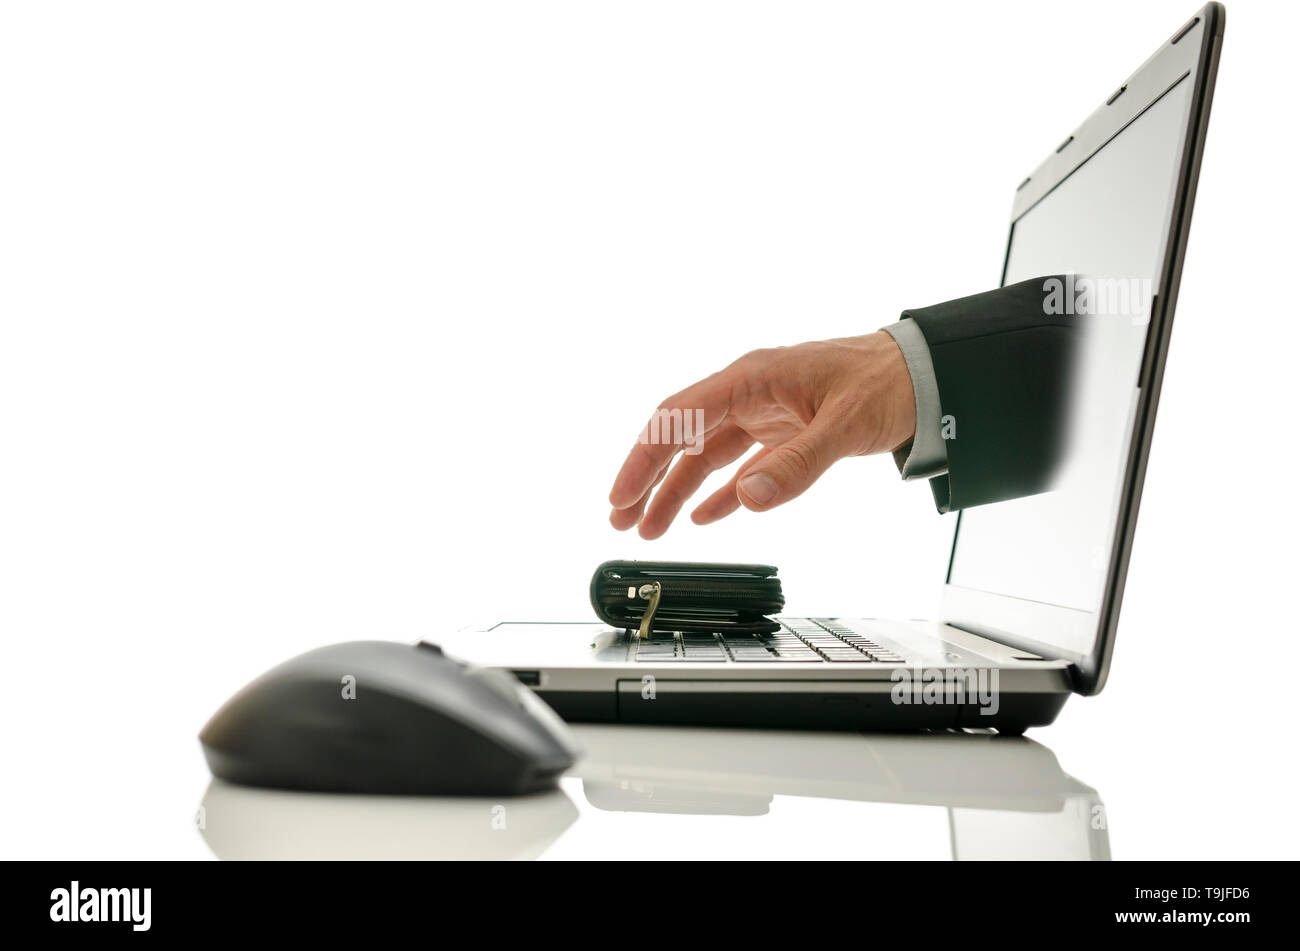 Hand coming out of laptop screen stealing wallet. Concept of internet theft. - Stock Image